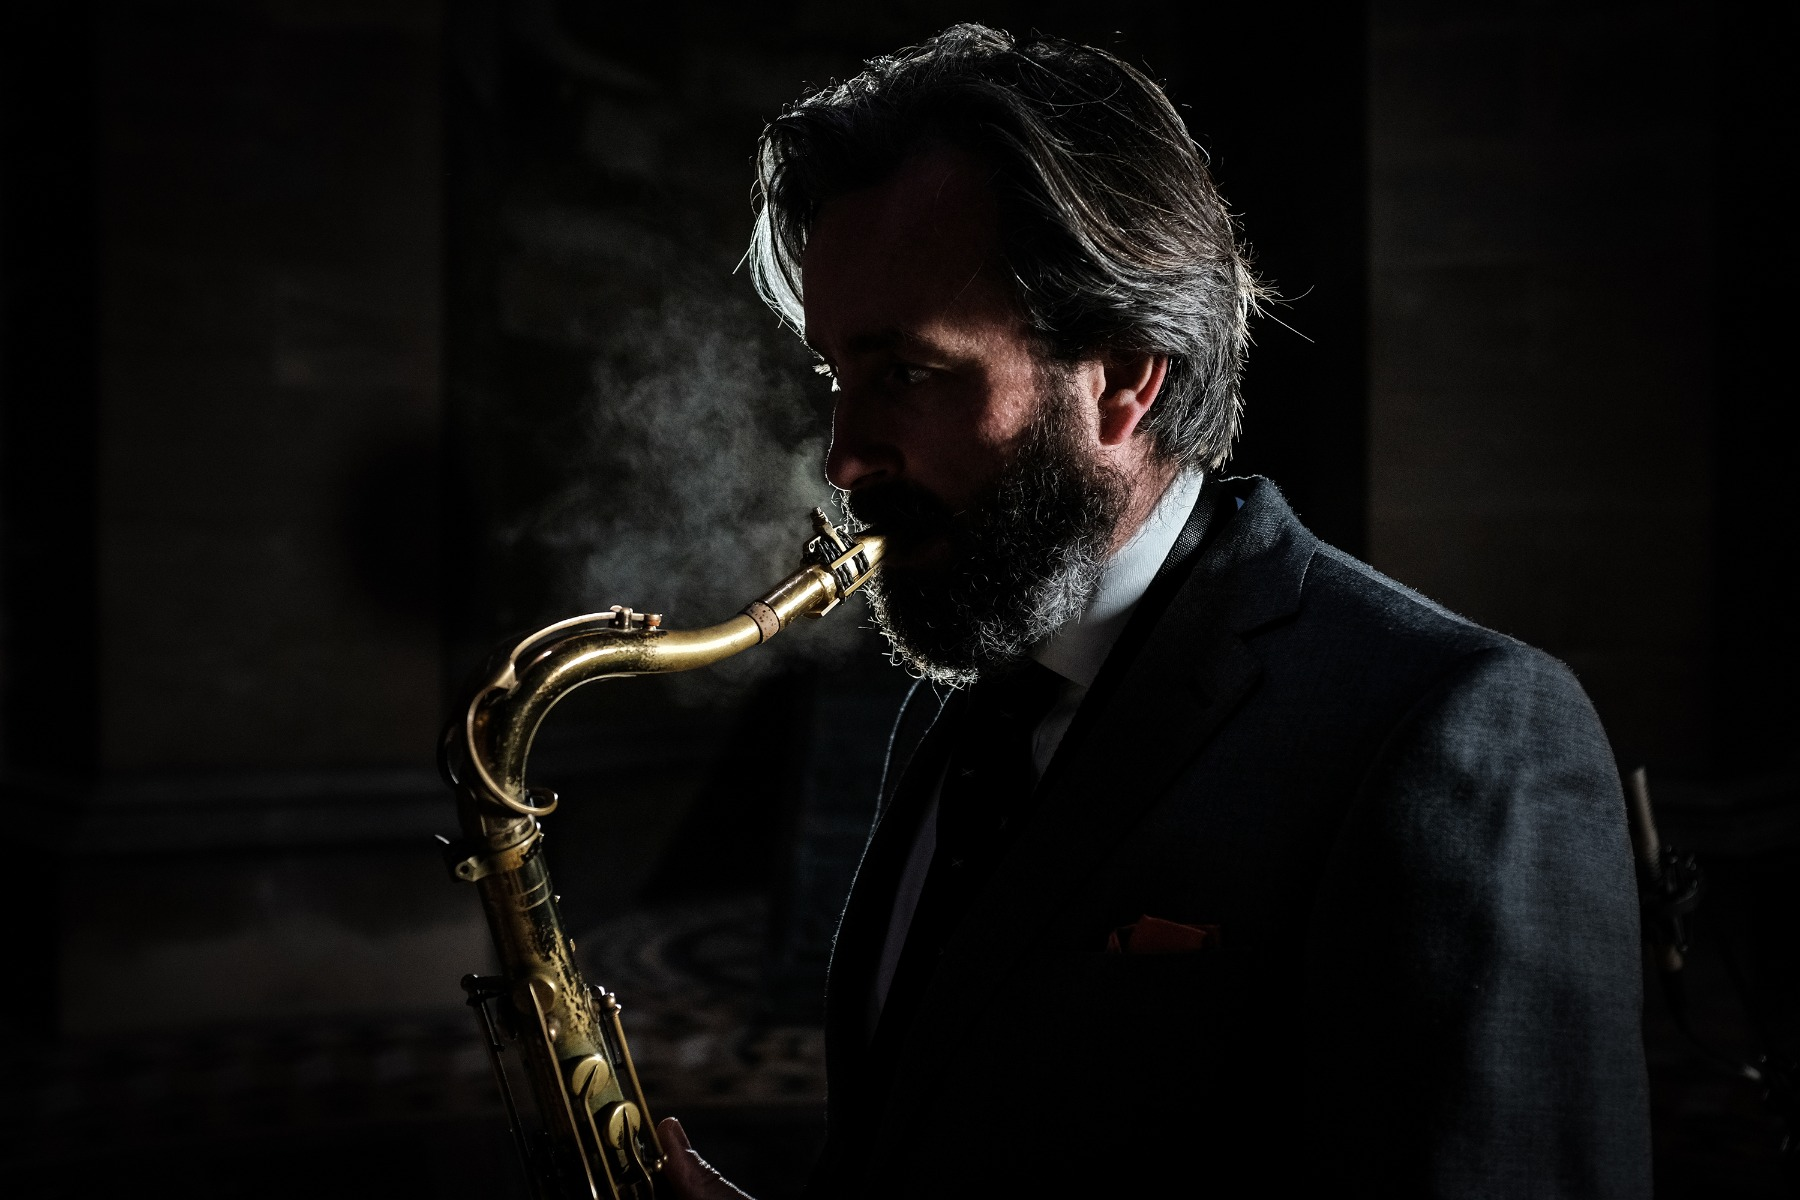 Bearded man in a suit jacket playing saxophone, his face partly obscured by shadow – photographed with the Fujifilm X100F